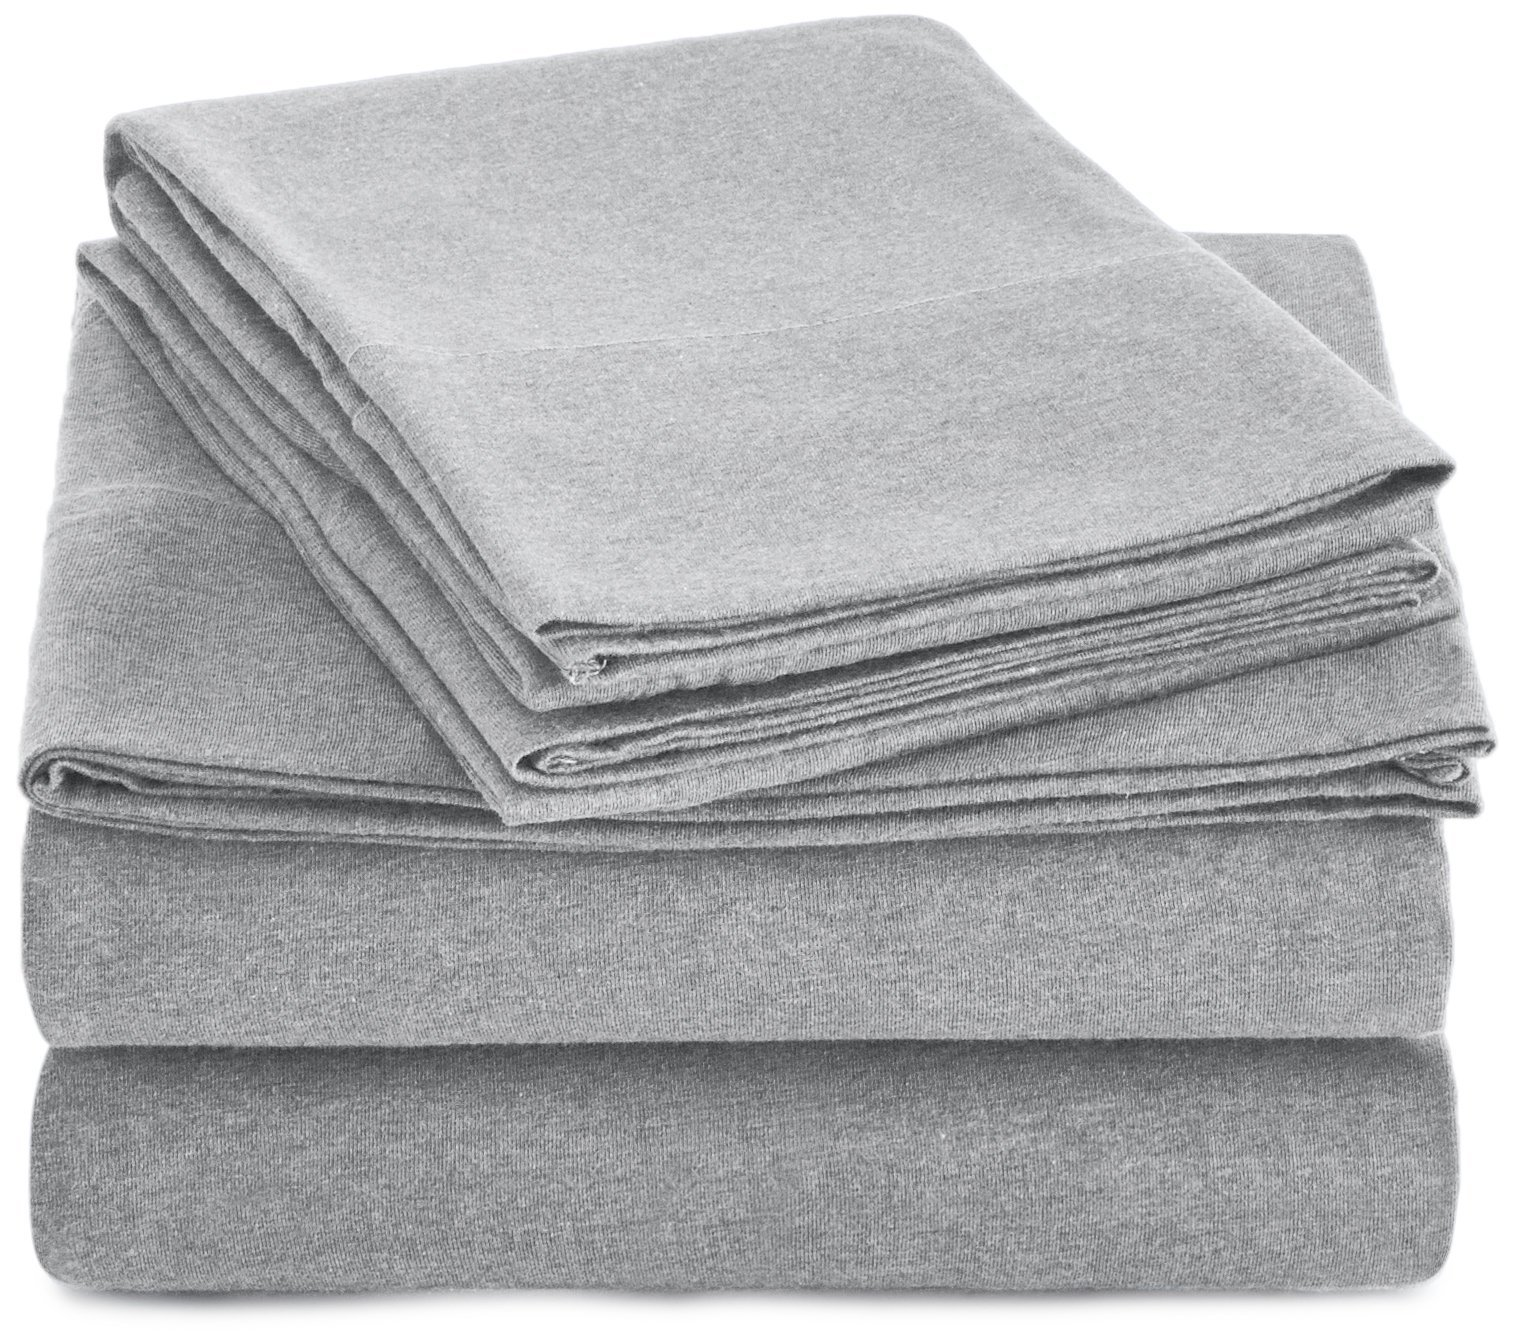 AmazonBasics Heather Jersey Sheet Set - Queen, Light Gray